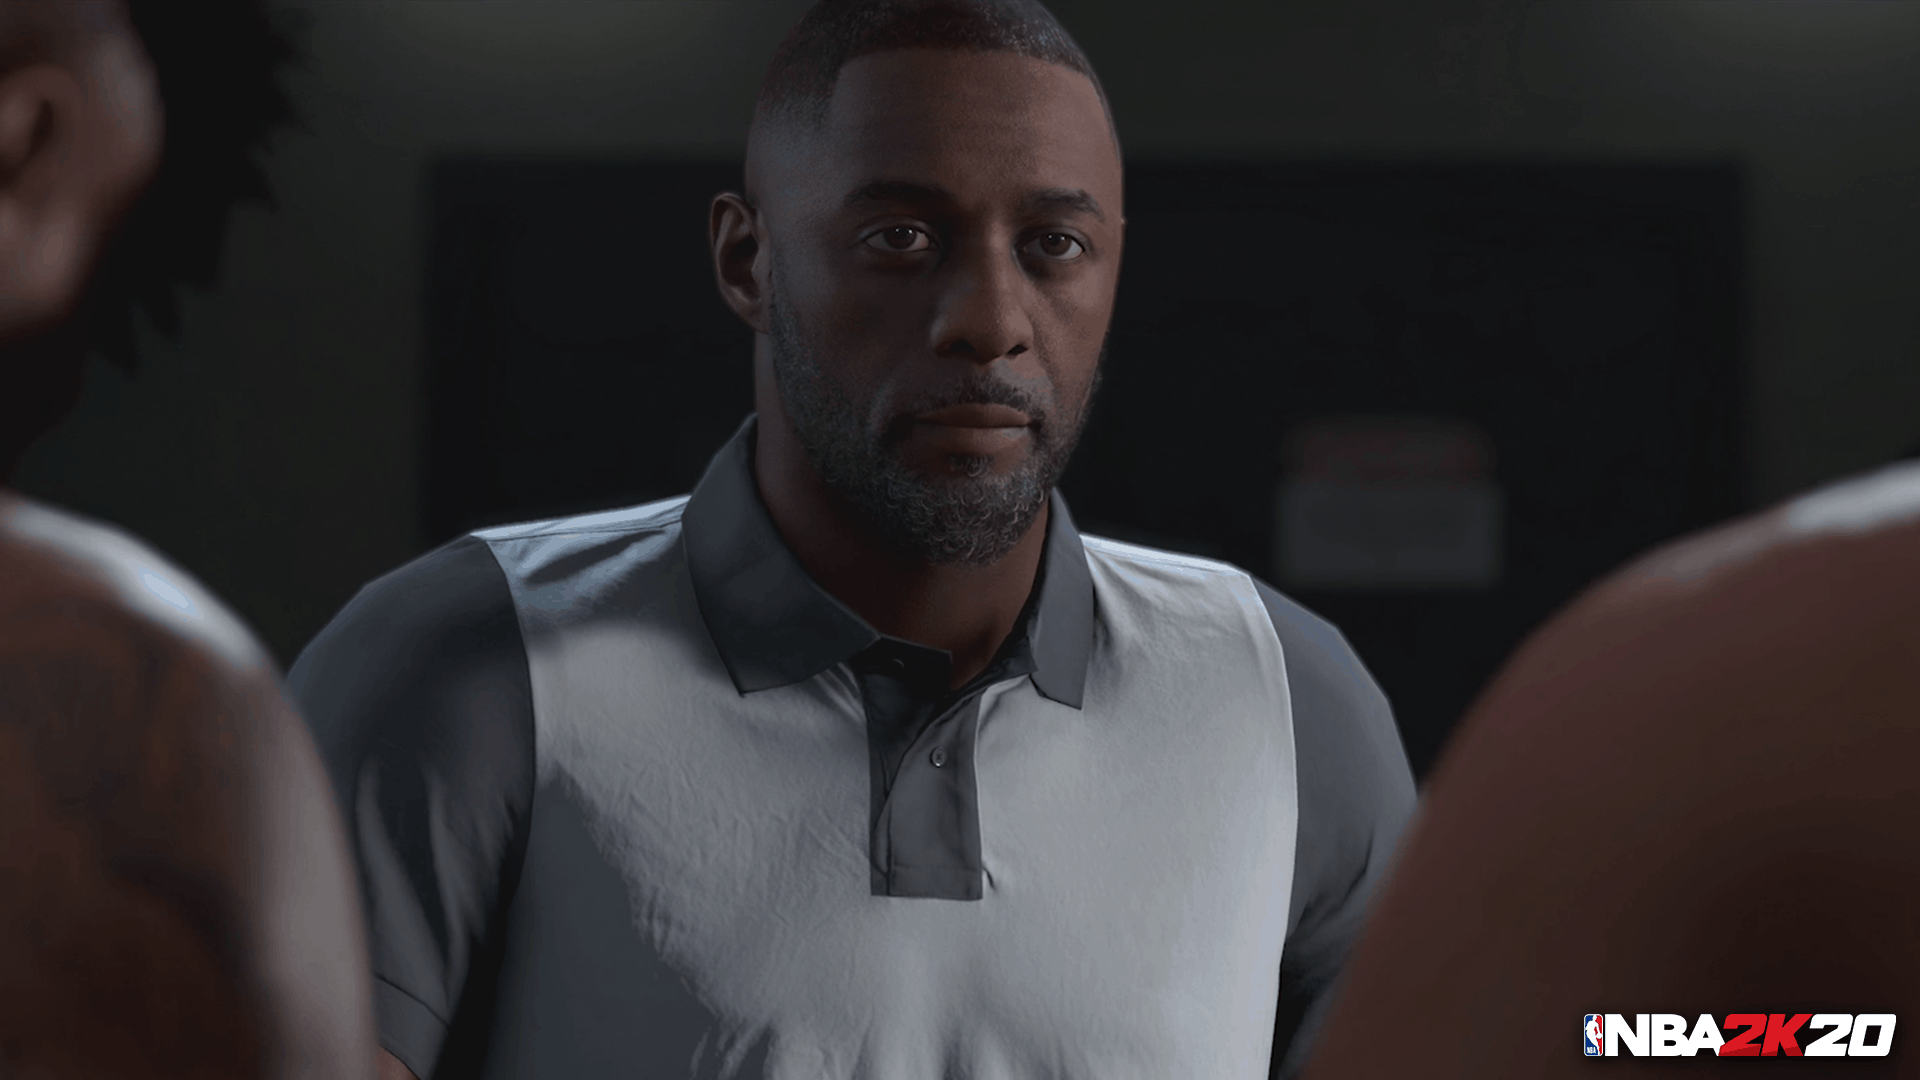 """SpringHill Entertainment Produces Star-Studded Cinematic Narrative For The NBA 2K20 MyCAREER Mode """"When The Lights Are Brightest"""""""